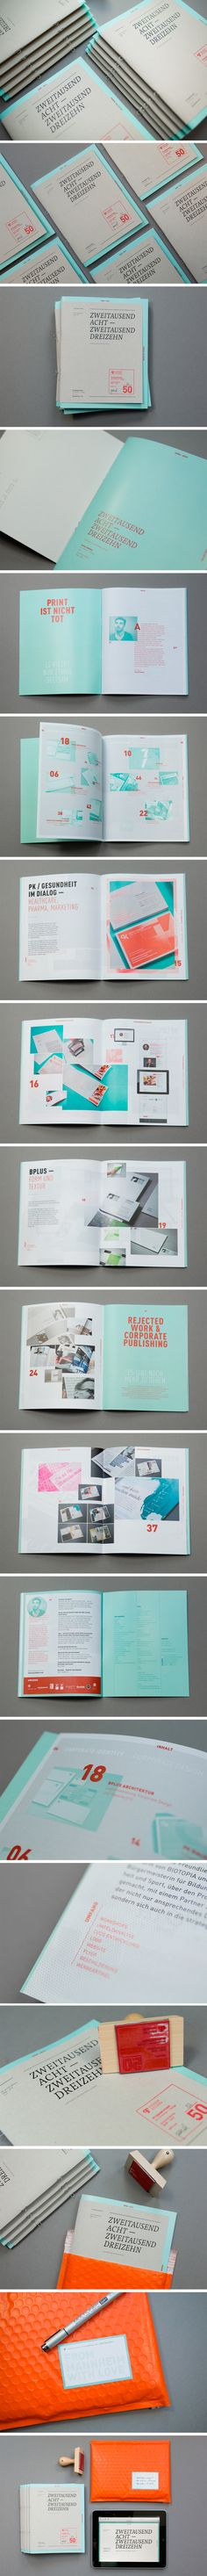 Pascal Fedorec, Germany // self promotional booklet and updated online portfolio. - editorial / color / typo